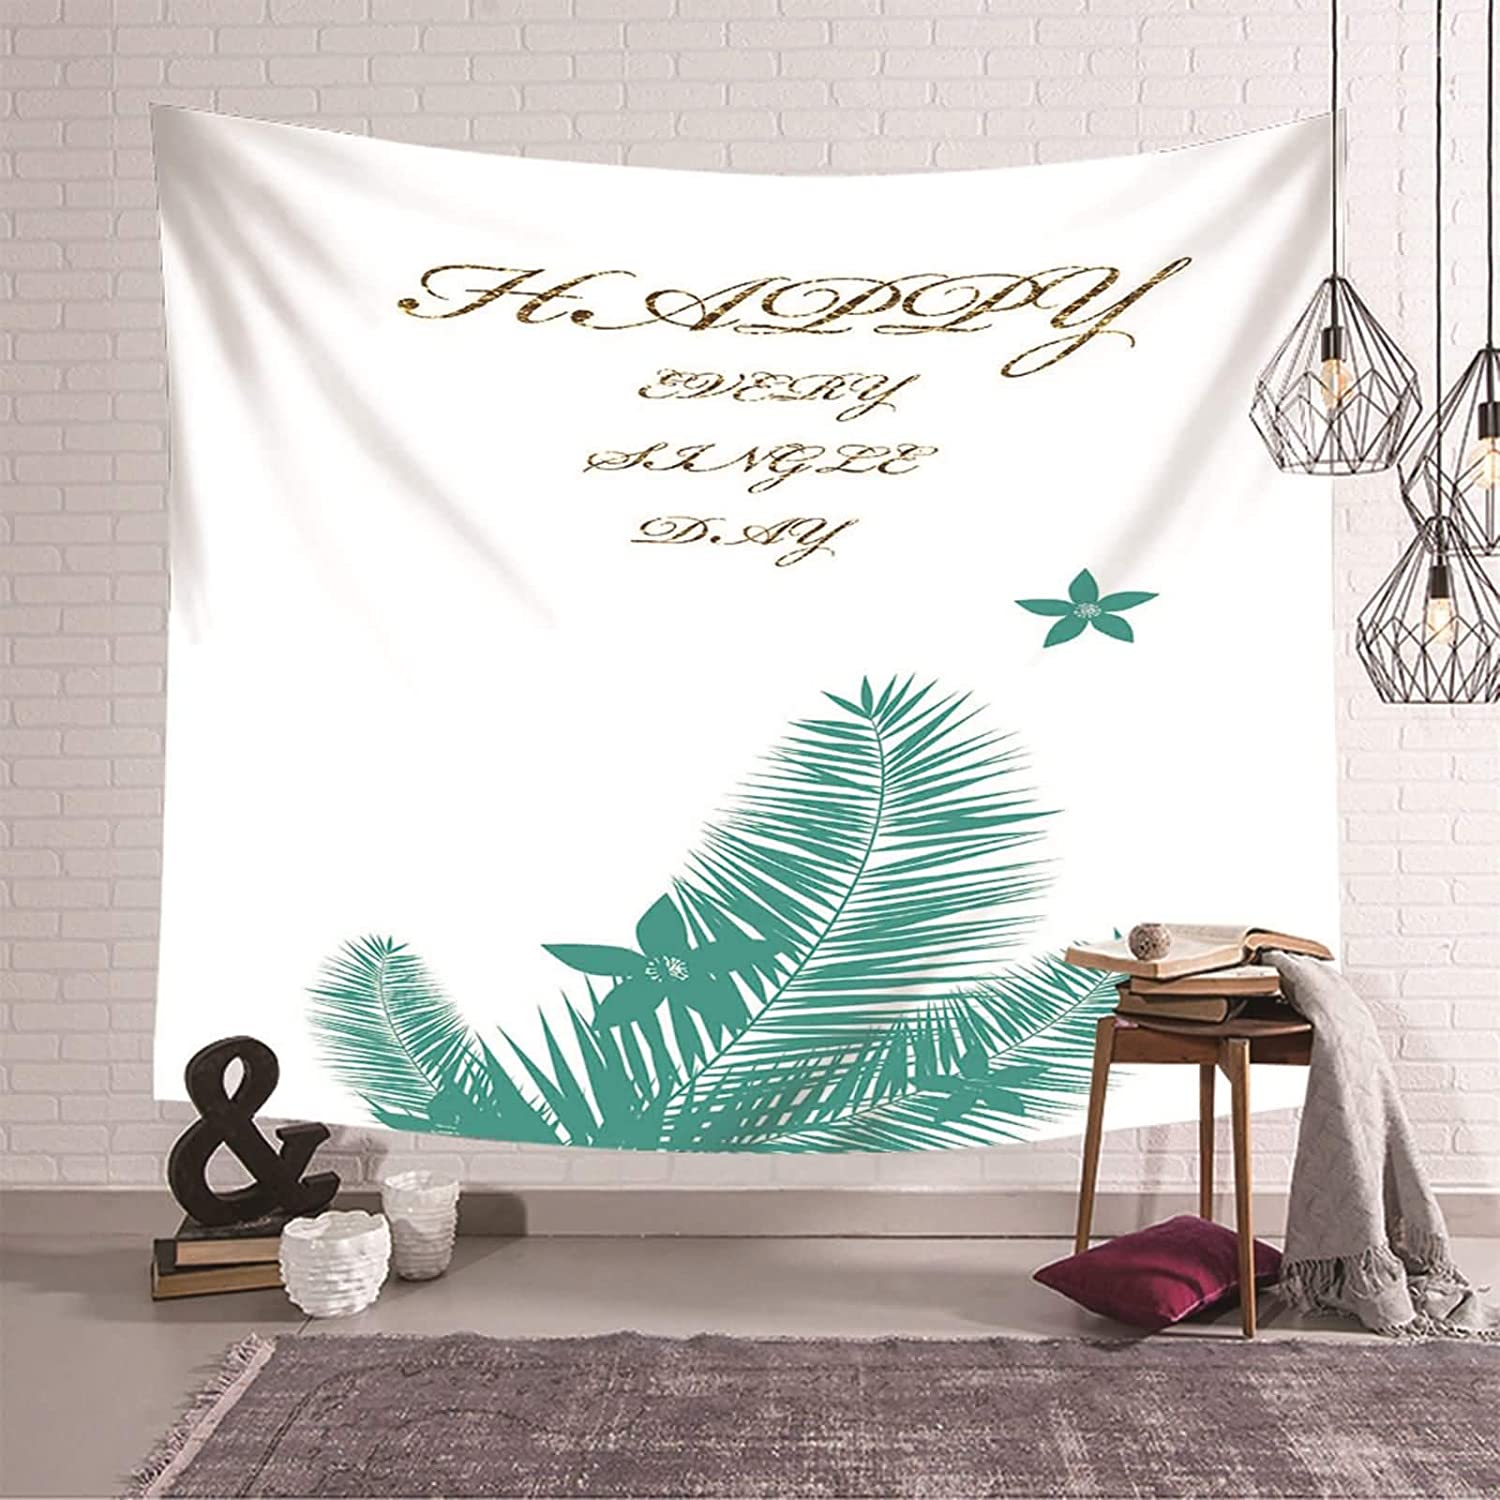 AMDXD NEW before selling Denver Mall Wall Hangings for Bathroom X 118